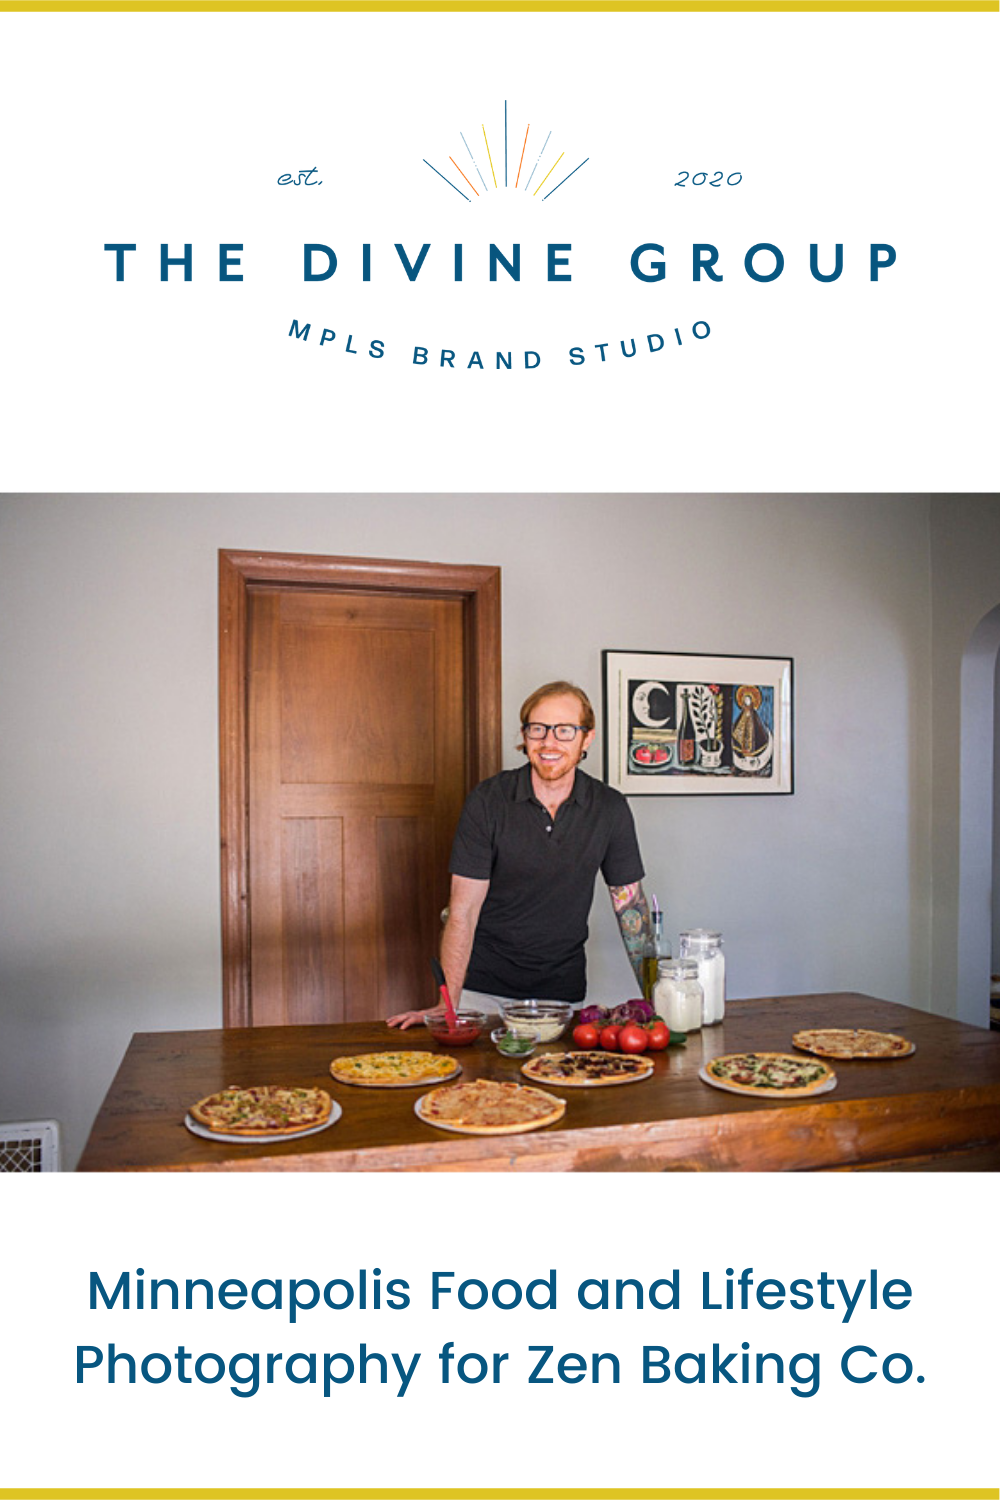 Vegan and gluten-free options are more available in Minnesota thanks to great companies like Zen Baking Co. We helped them create food and lifestyle photography for their new website and social media accounts as they launched their crusts and pizza for public order. Visit the blog for photos and more on this LGBTQ-owned brand that gives back with every order. | The Divine Group | Minneapolis brand photography, Minneapolis food and lifestyle photography | #brandphotography #lifestylephotography